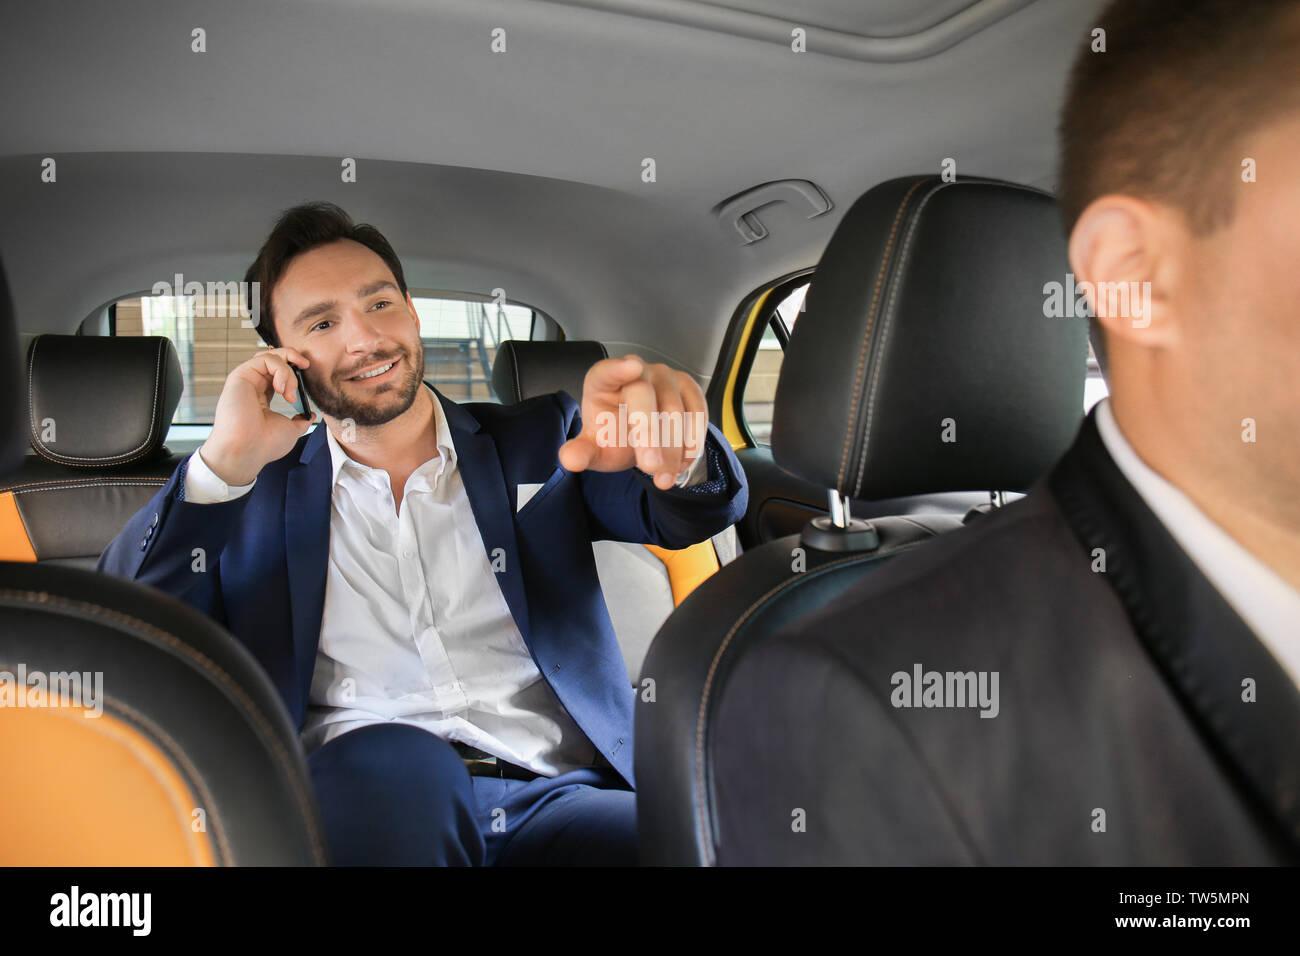 Handsome man talking on phone while sitting in taxi car - Stock Image